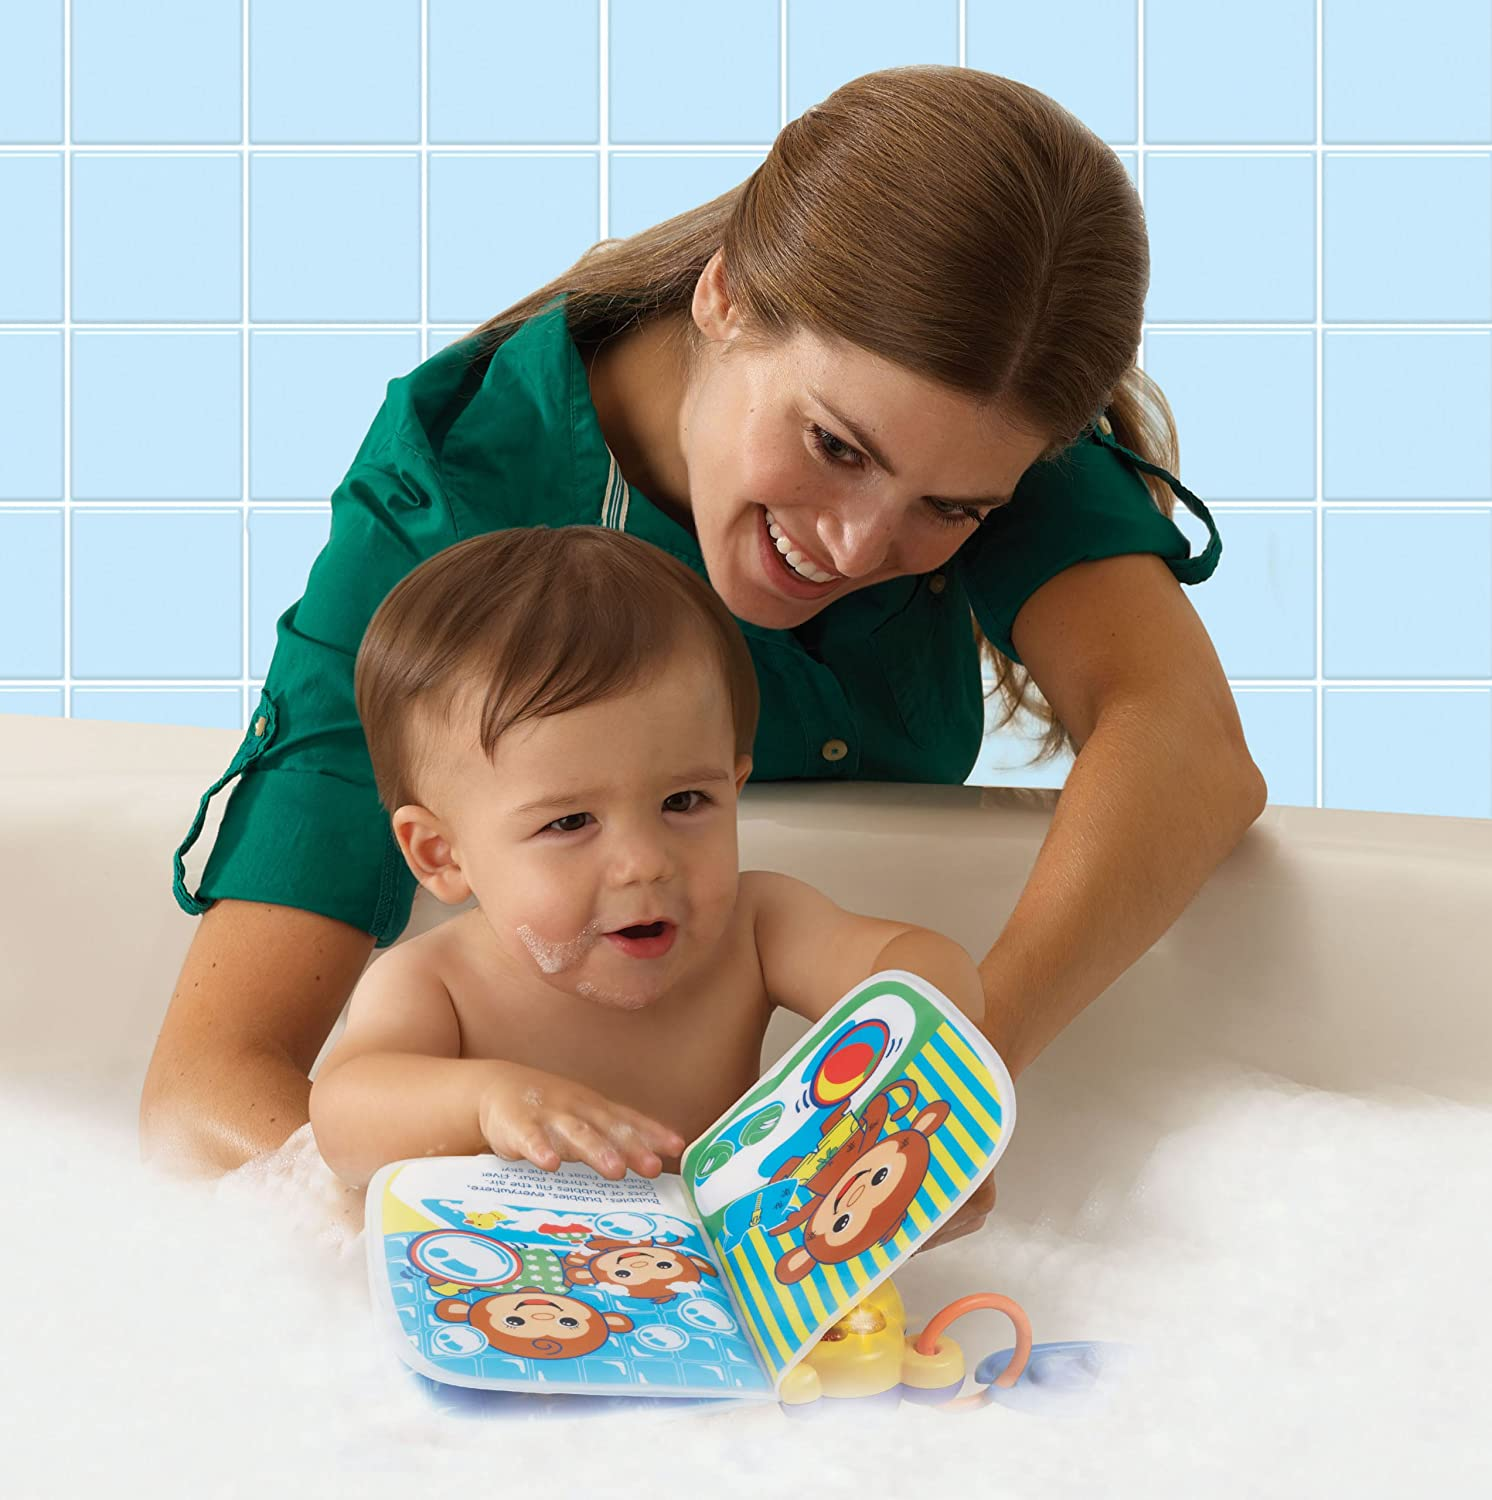 Amazon.com: VTech Sing and Squeak Bath Book: Toys & Games